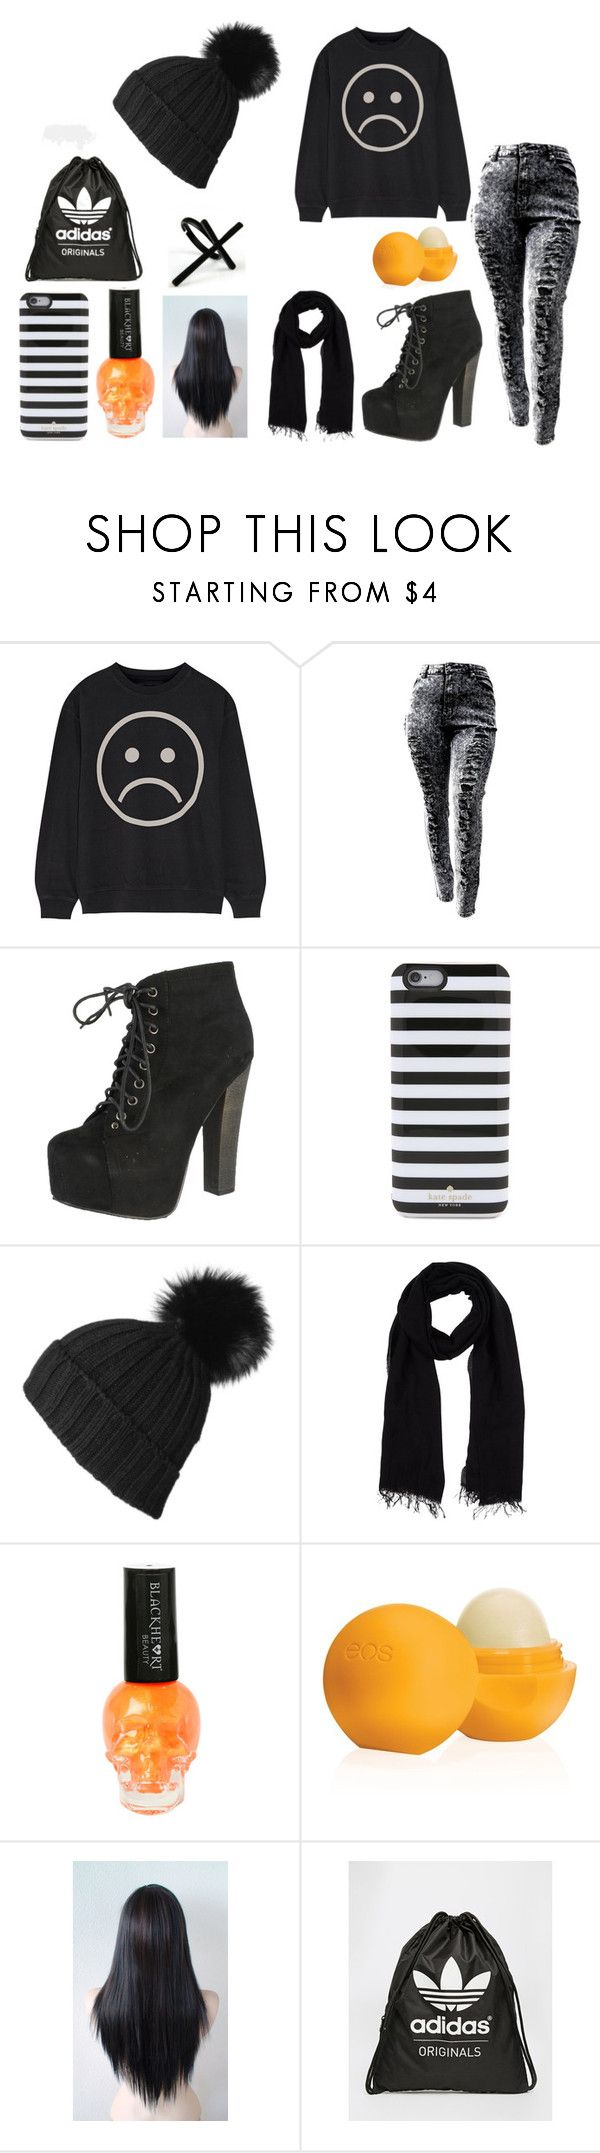 """""""Fall Outfit #2"""" by nightstalker ❤ liked on Polyvore featuring Marc by Marc Jacobs, Breckelle's, Kate Spade, Blue Les Copains, Eos, adidas and Emi Jewellery"""